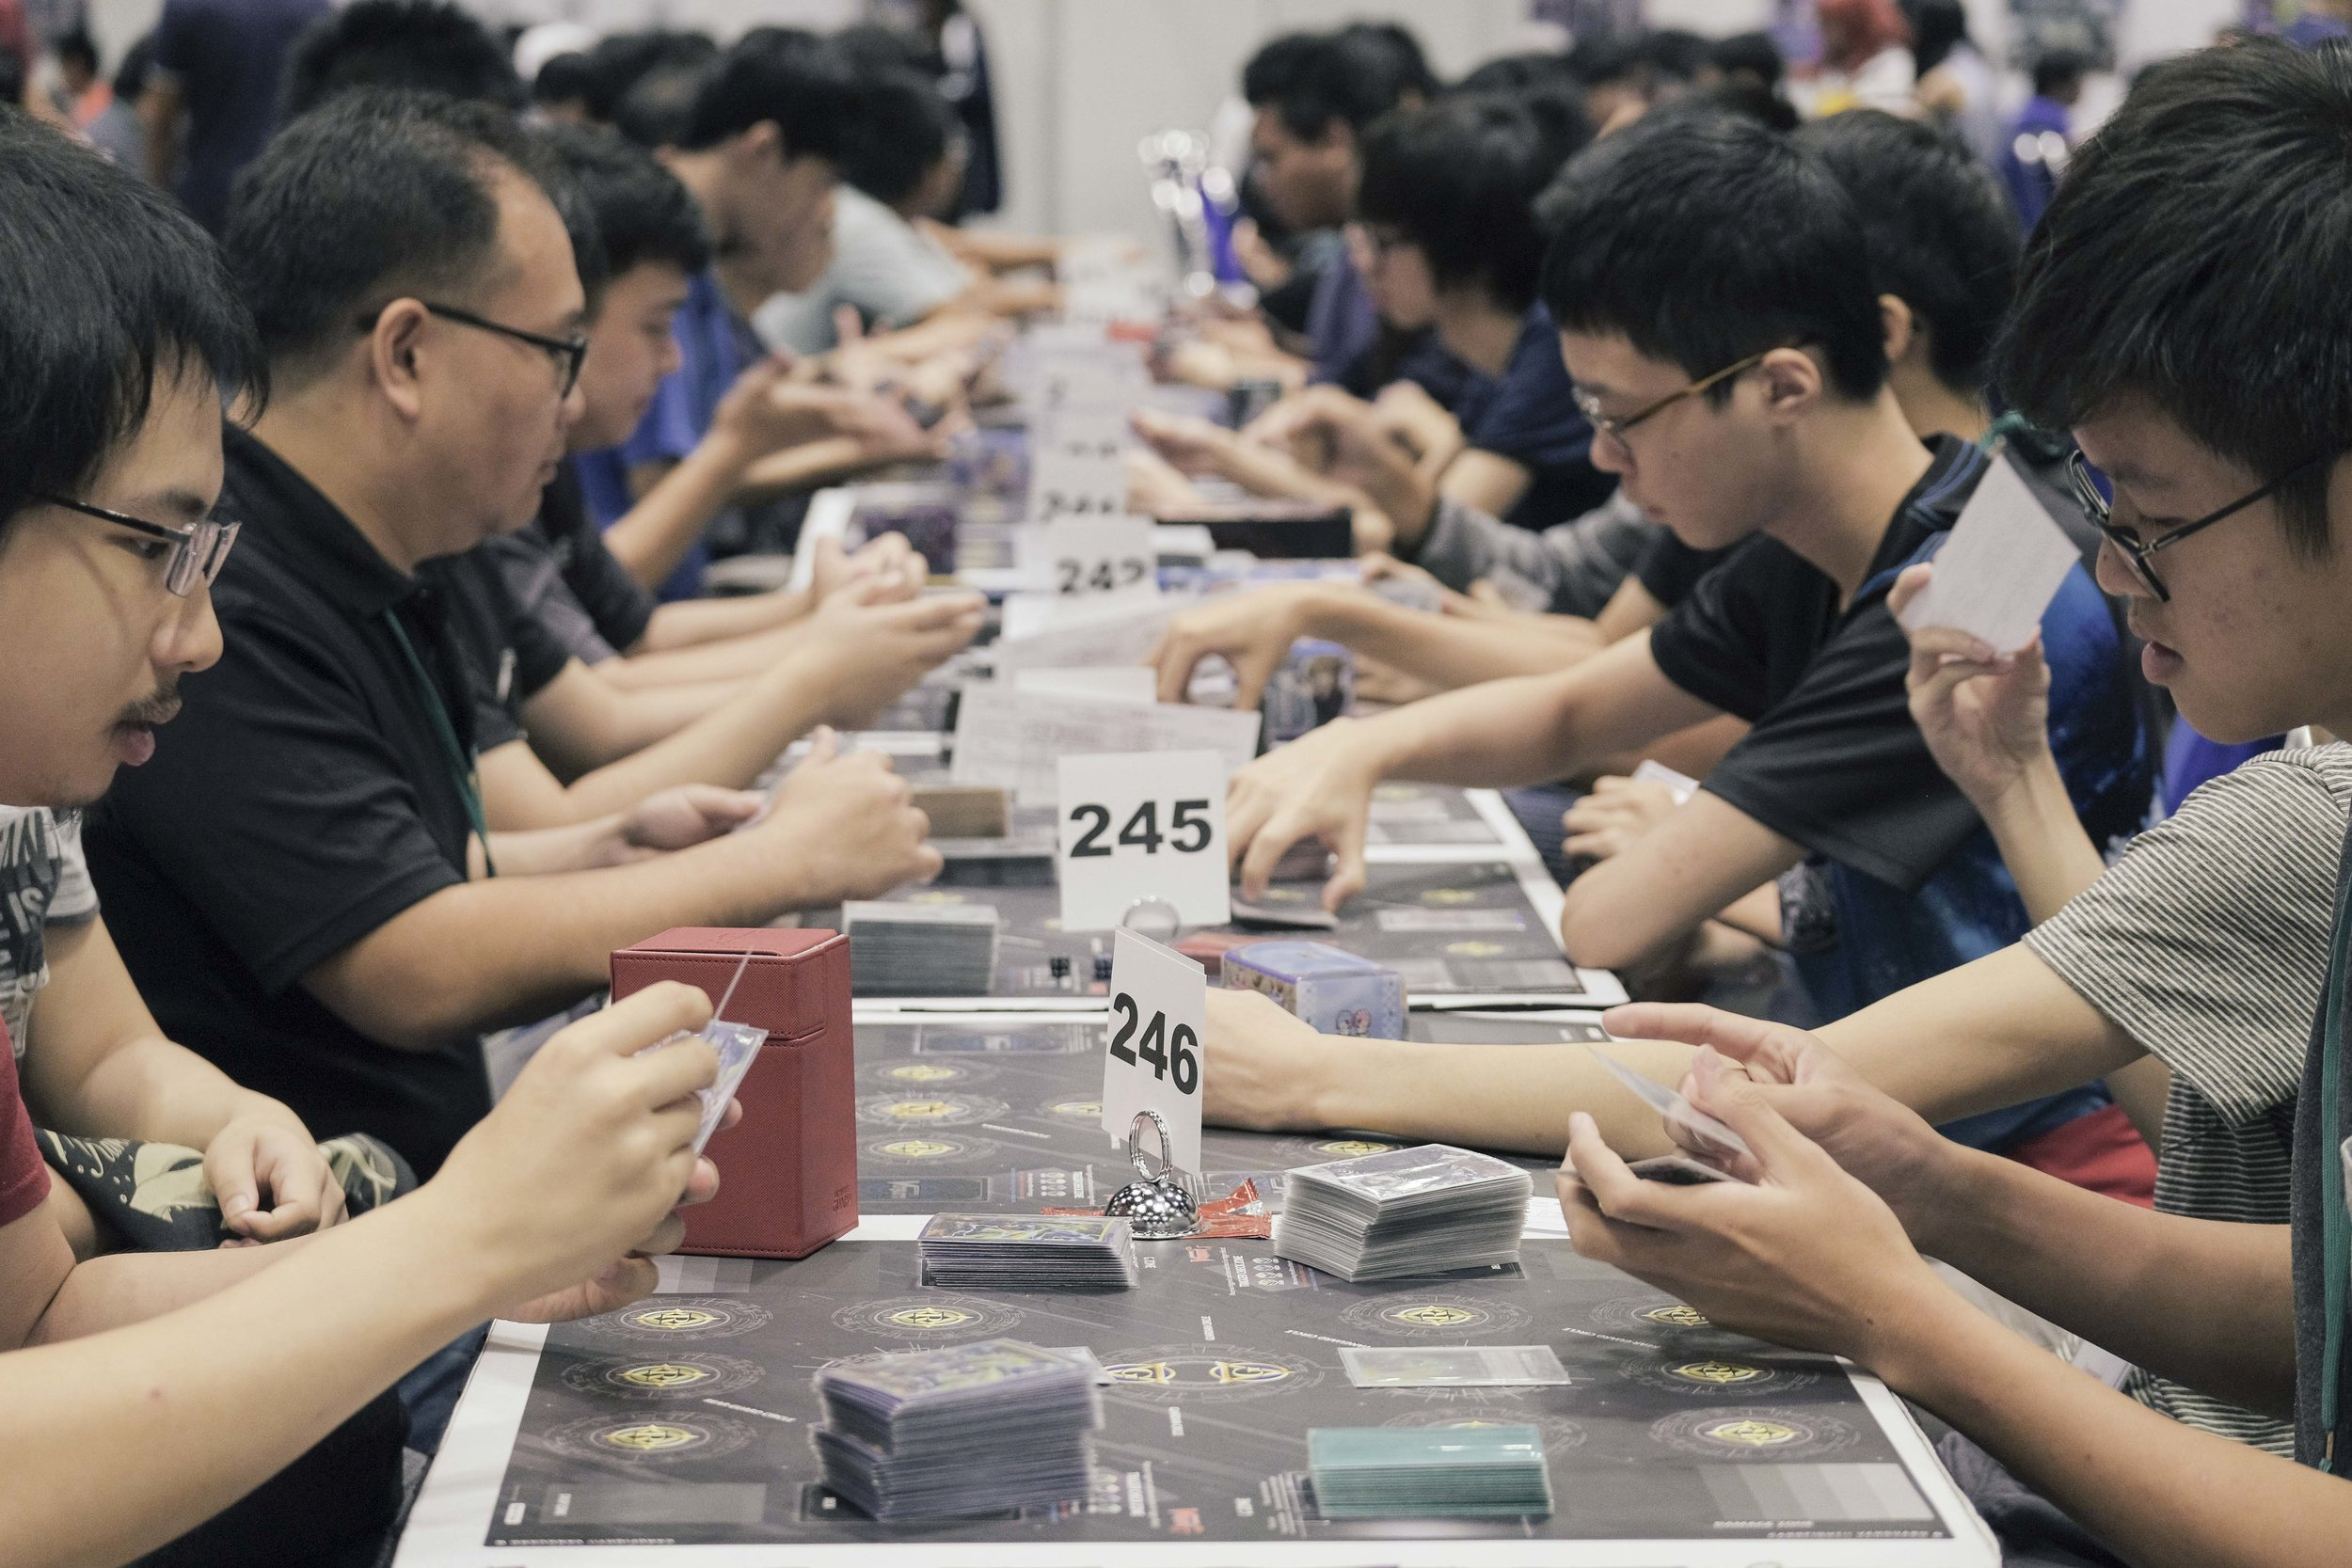 """It's all about beating and winning as many of your opponent's cards as possible."" - Vanguard competitor. Photo: Marc Nair"